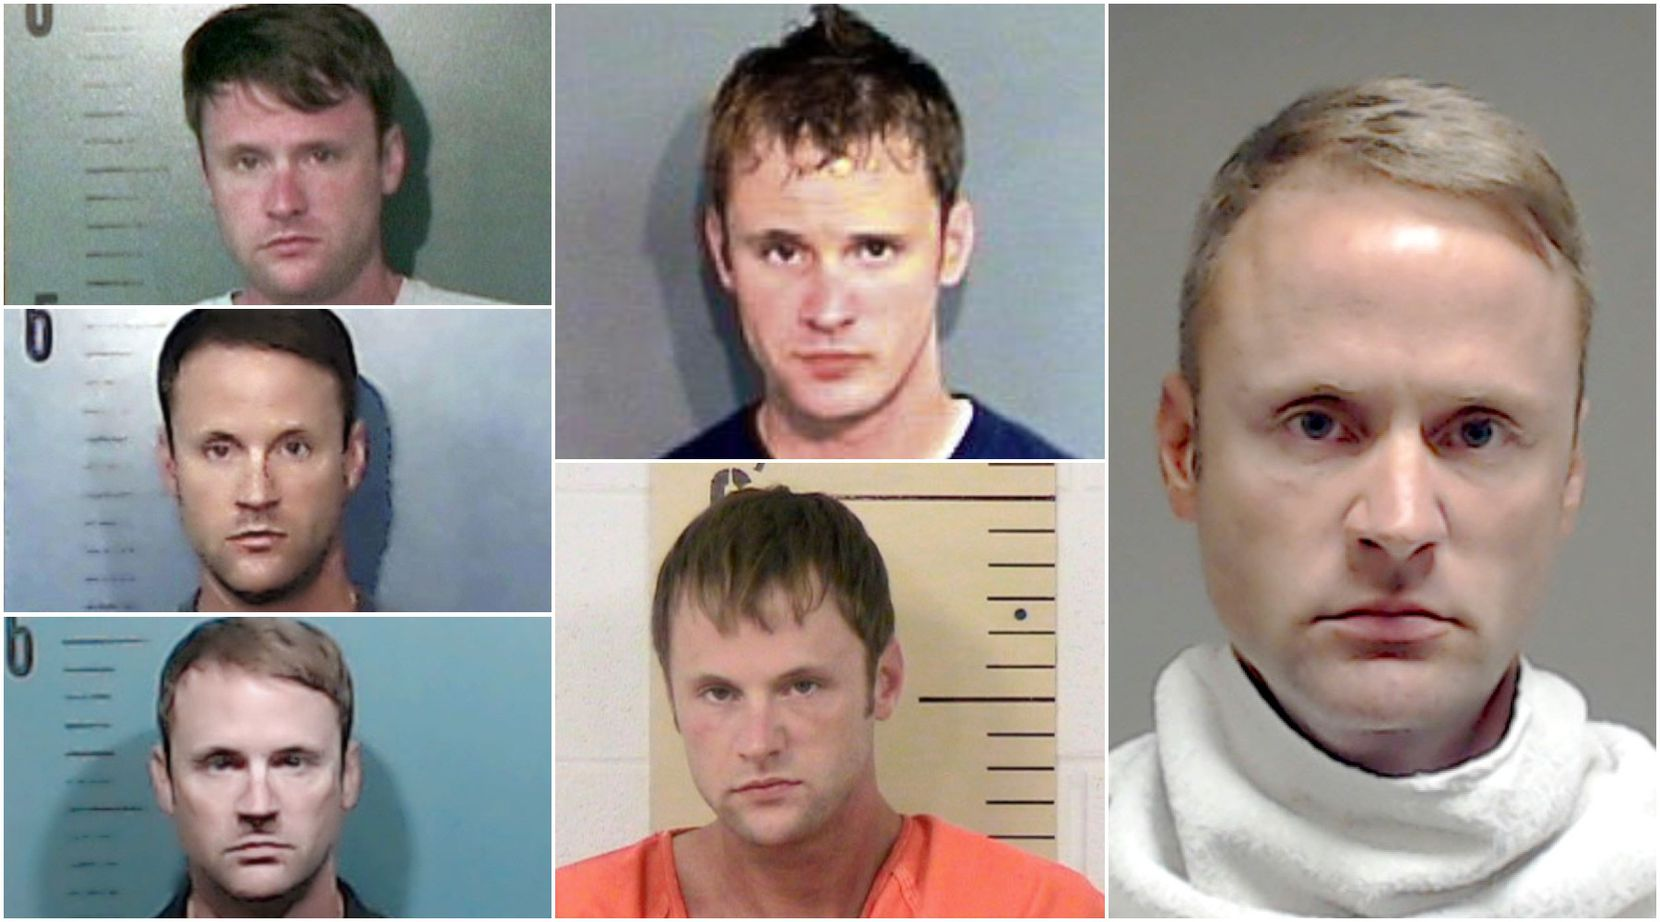 These are some of the jail booking mugs for John Wright Martin, who has been arrested multiple times in Texas. On the left are mugshots from Taylor County in 2013, 2017 and 2018. The center column has mugshots from Brazos County in 2006 and Burnet County in 2010. The far right is Martin's booking mug from Collin County Detention Center after his felony drunken-driving arrest on April 22, 2016. Martin is accused of stealing money while working as a personal assistant for Randy and Kristy Pitchford of Frisco..